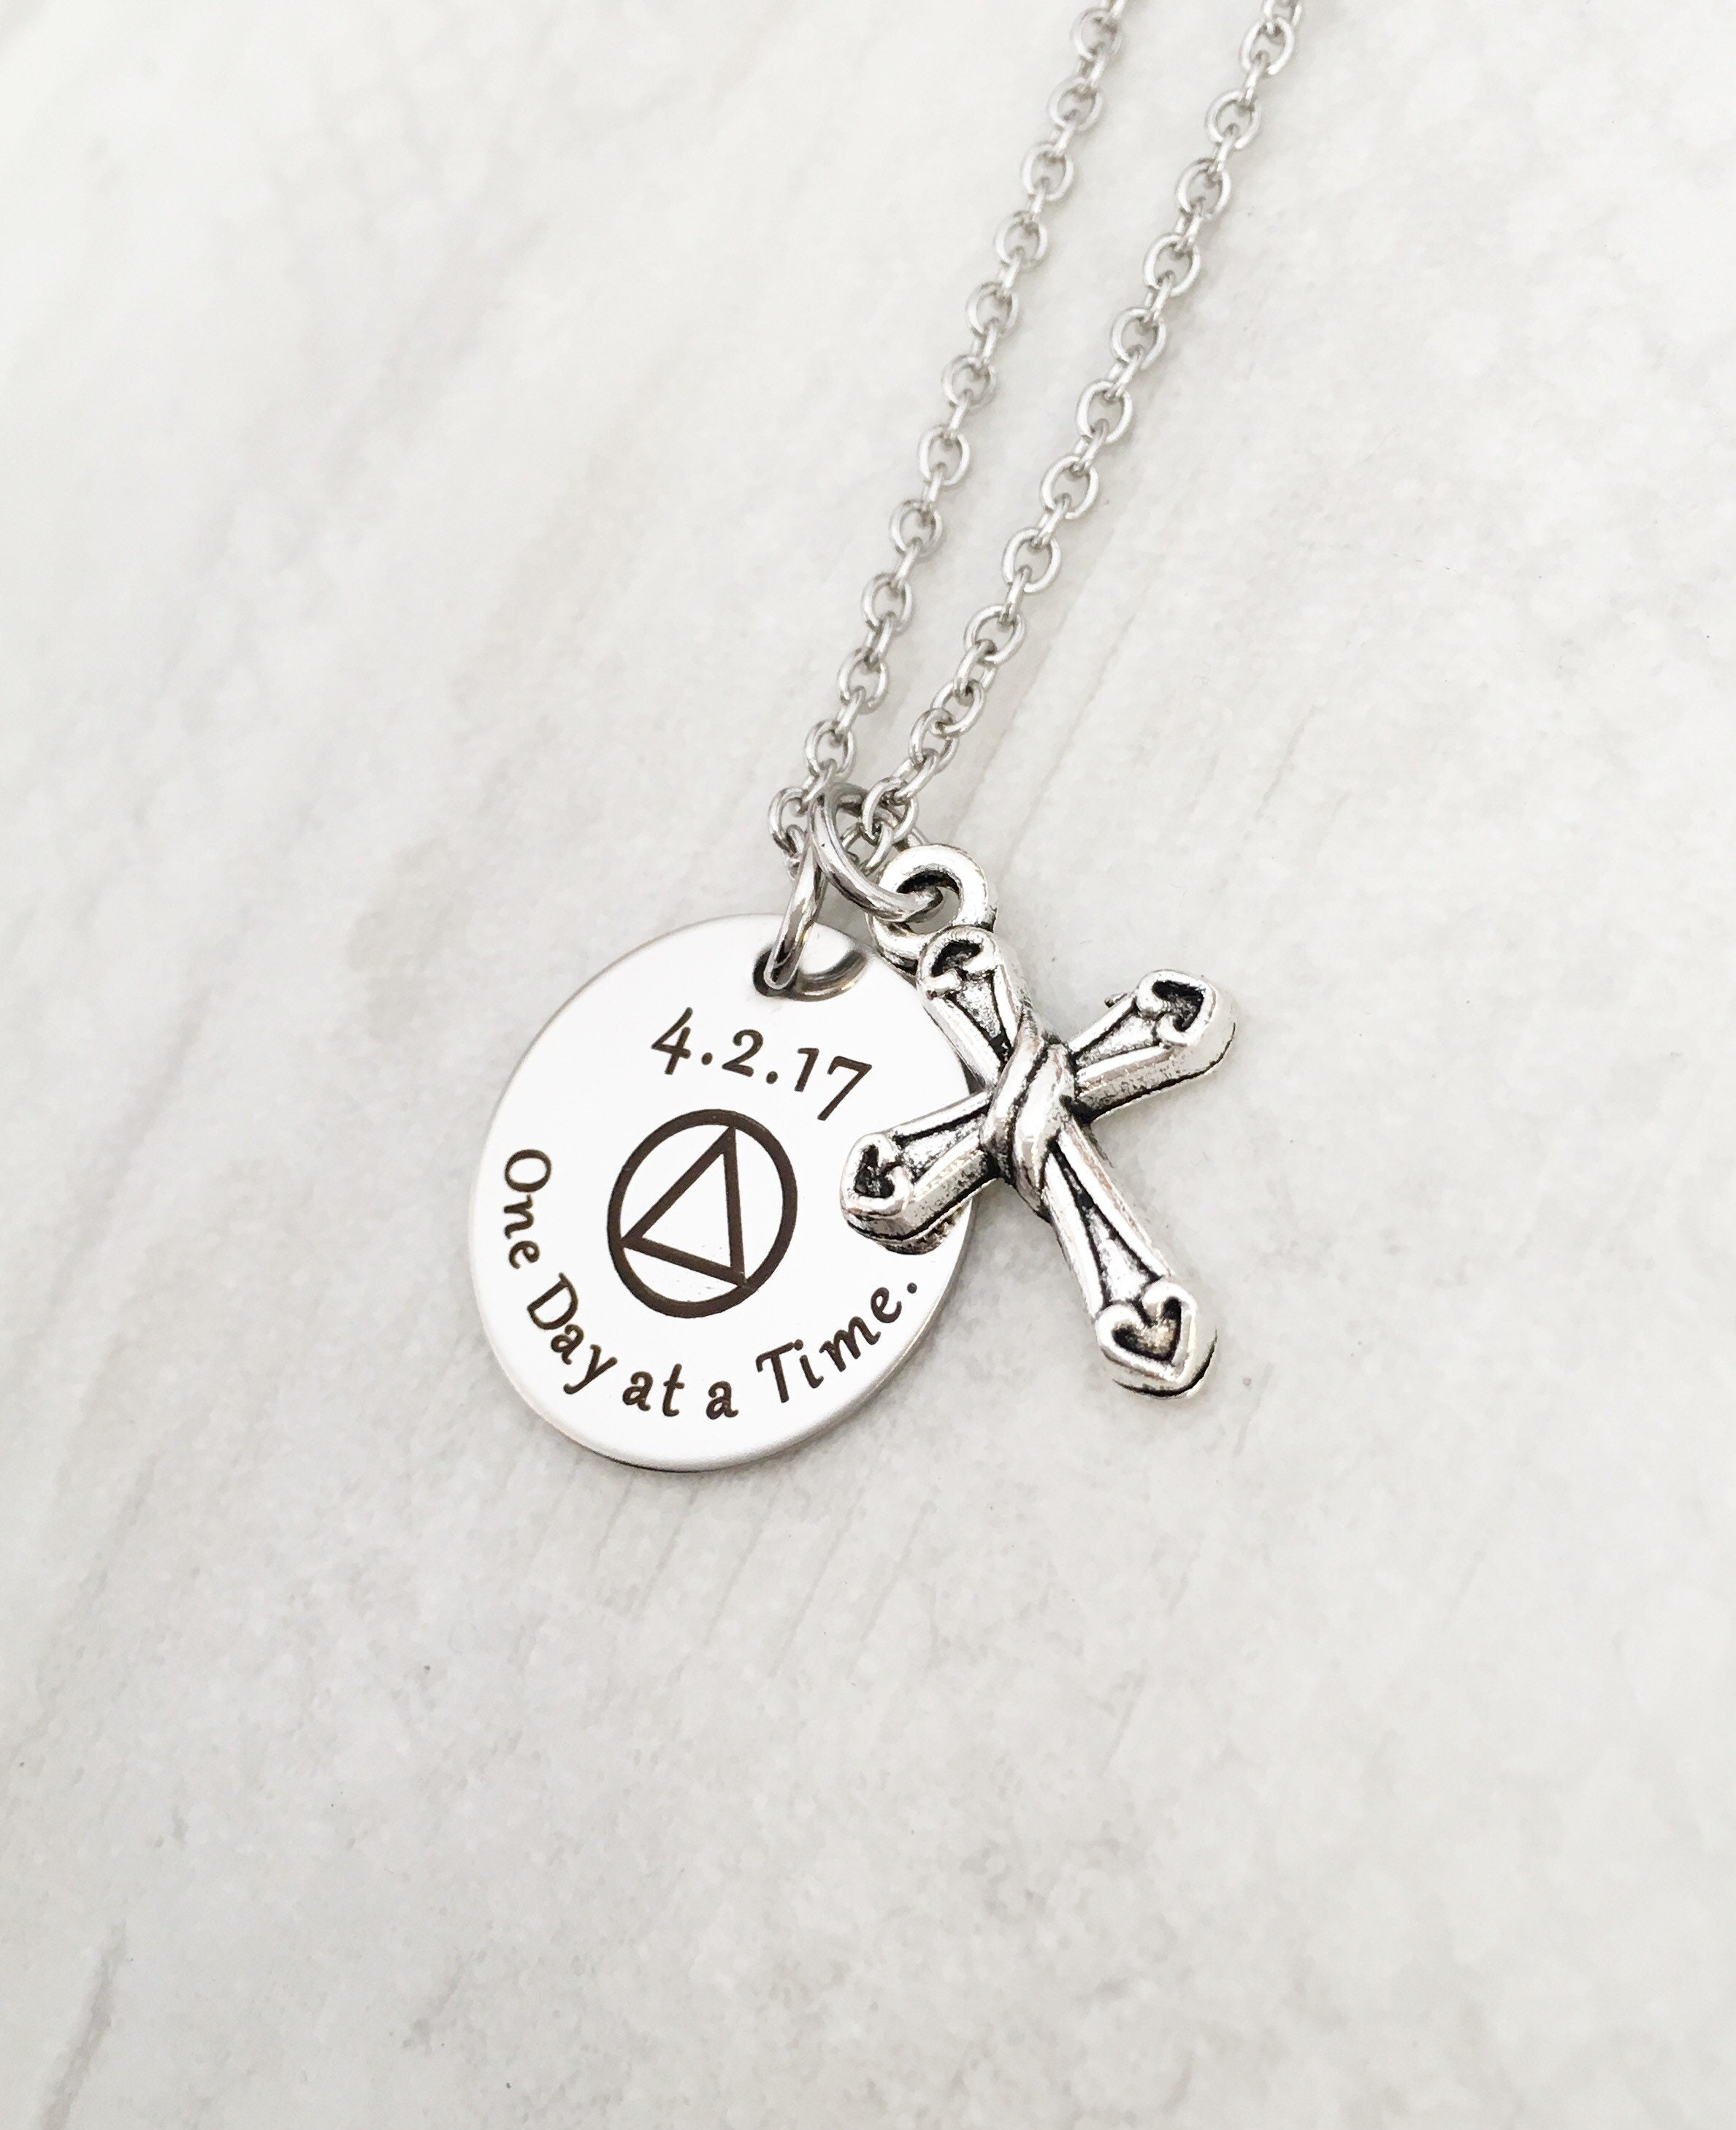 included day any chain calendar mini special silver old charm pendant ball your recovery shop